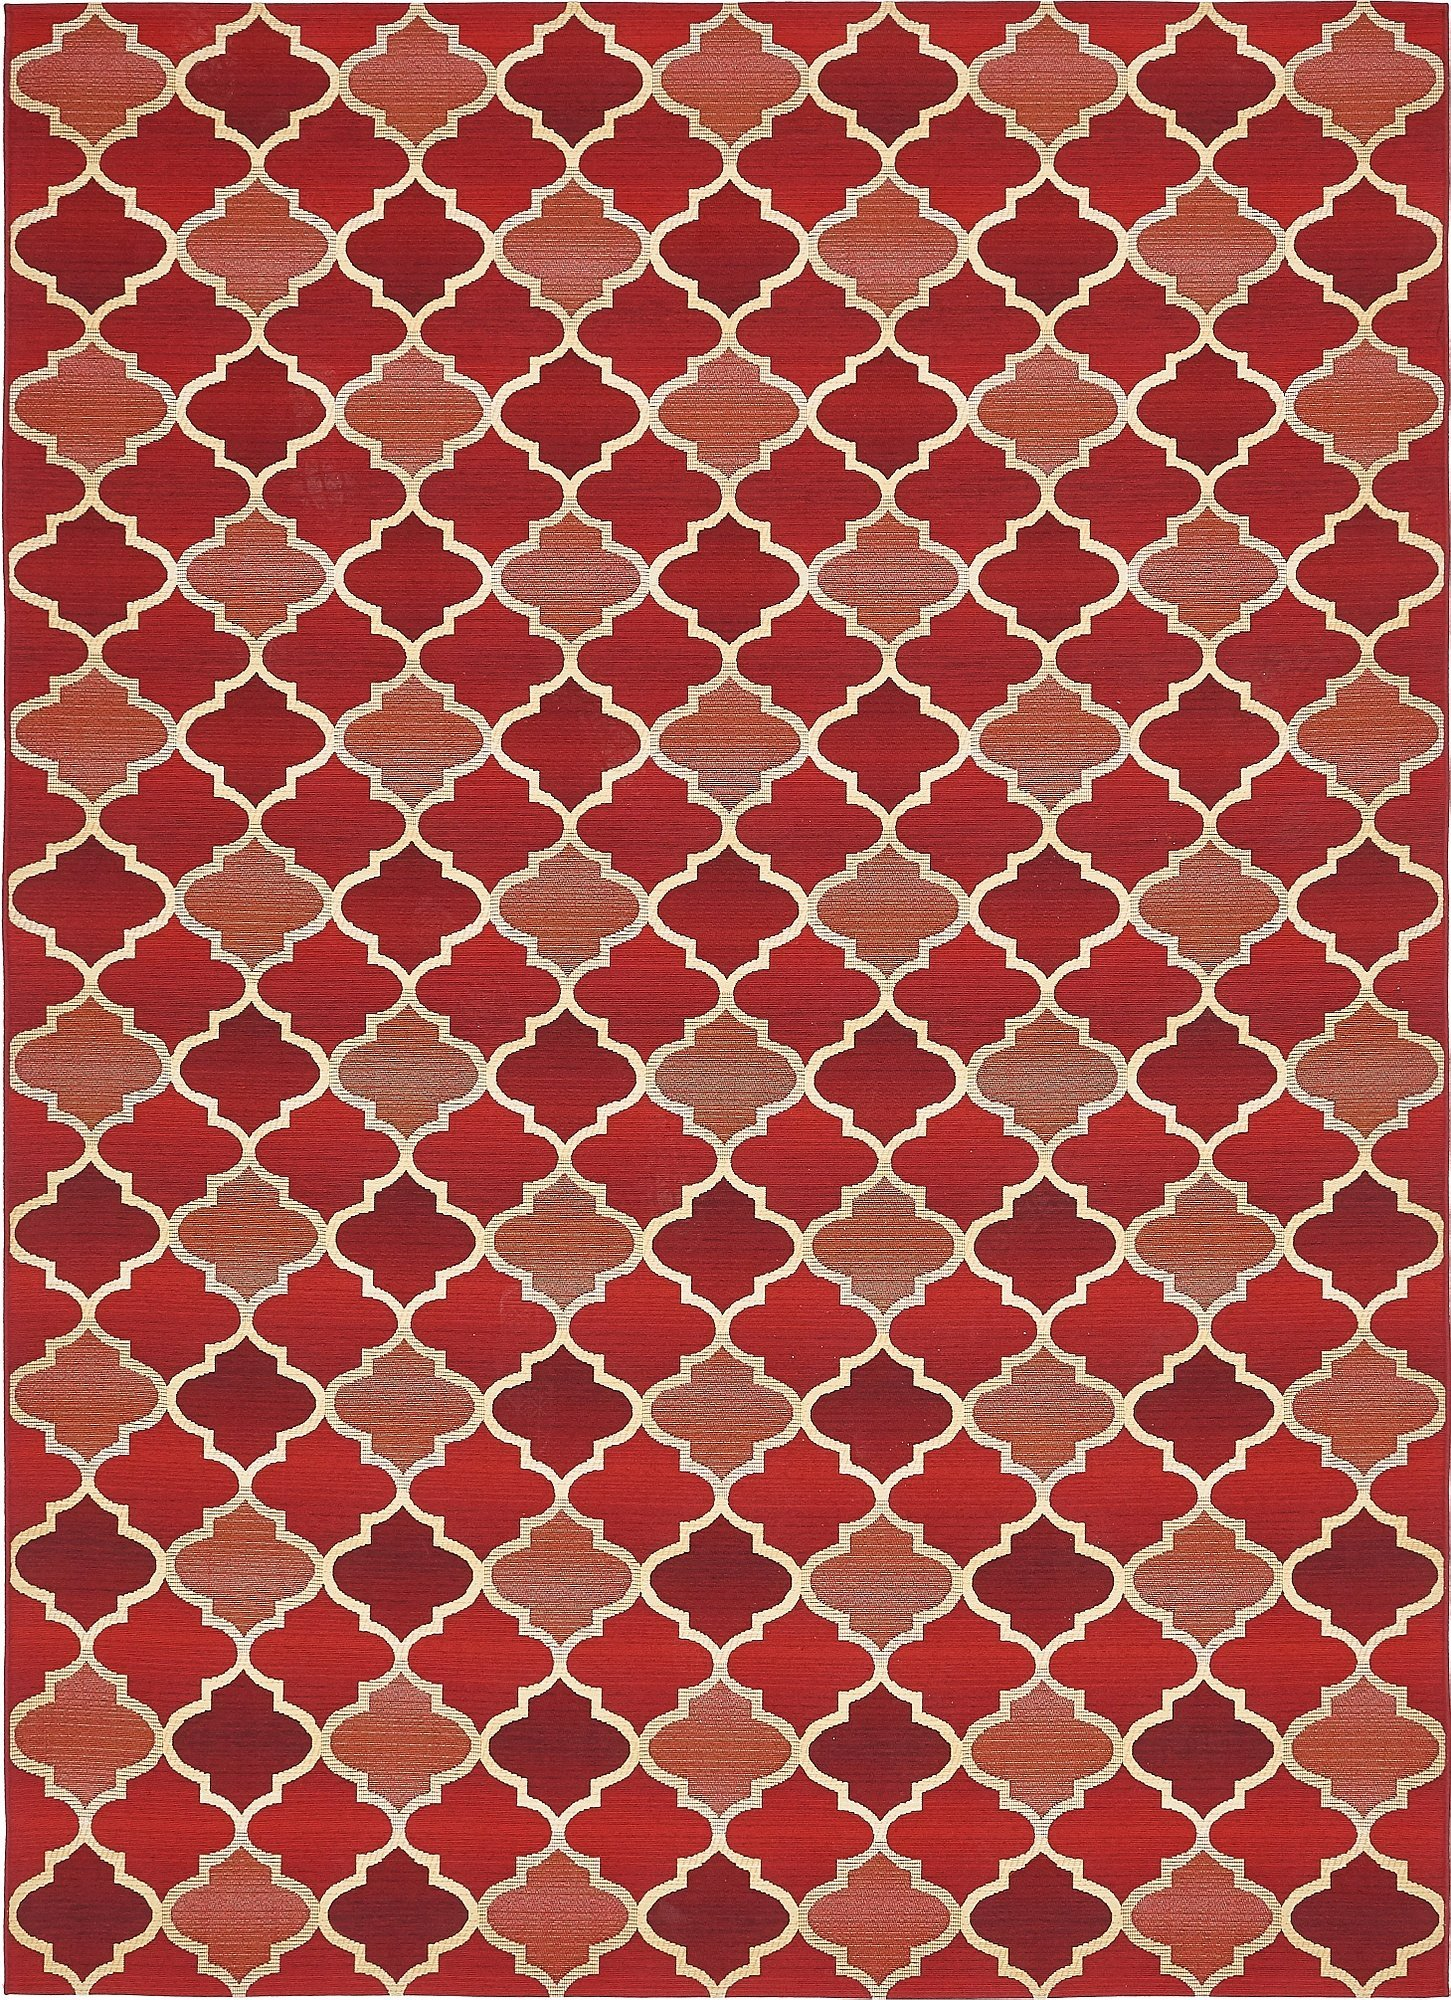 Unique Loom Eden Outdoor Collection Red 8 x 11 Area Rug (8' x 11' 4'') by Unique Loom